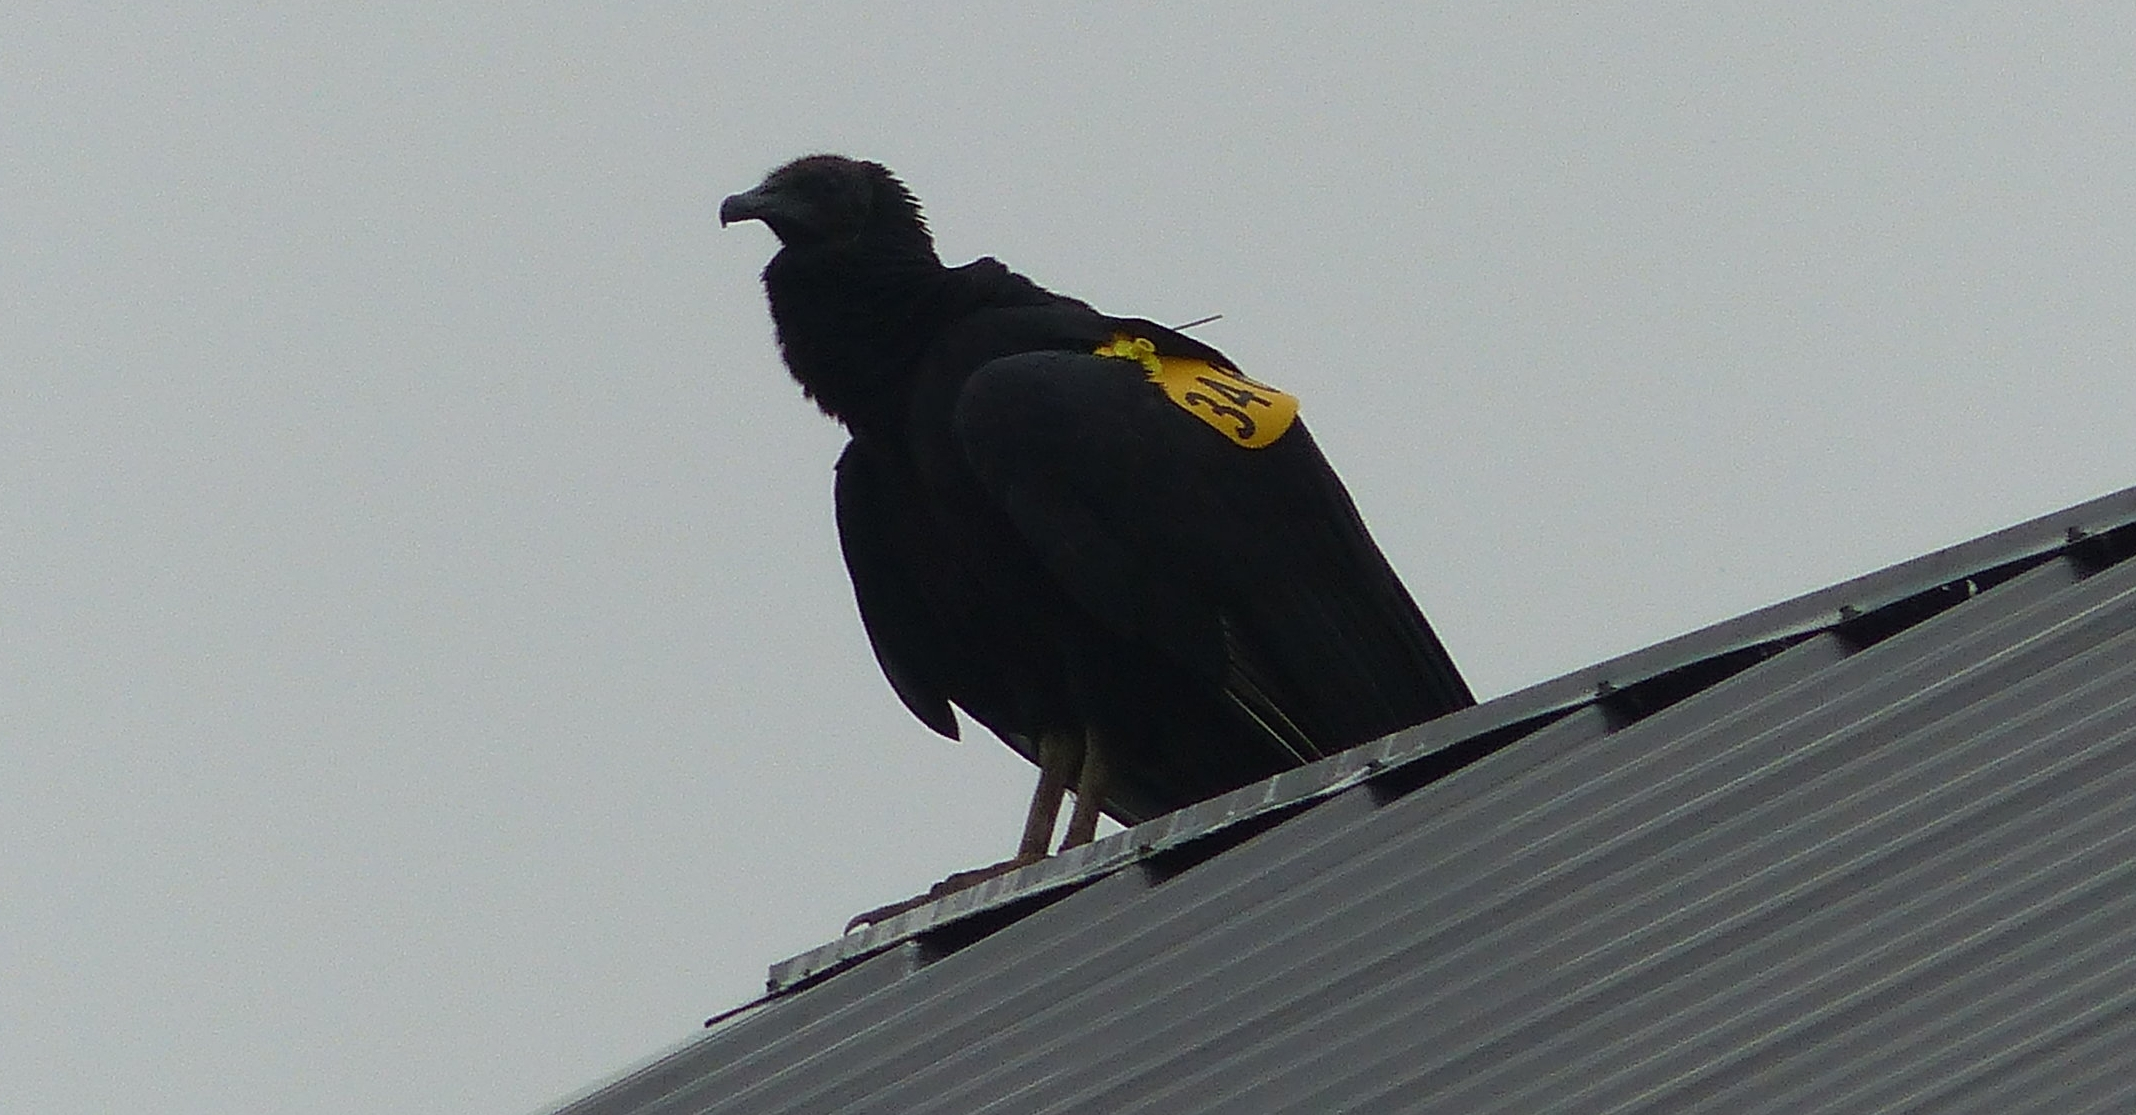 A black vulture tagged by Hawk Mountain named Versace, perched on a barn in the Kempton Valley. Notice her wing tag and antennae of the telemetry unit.